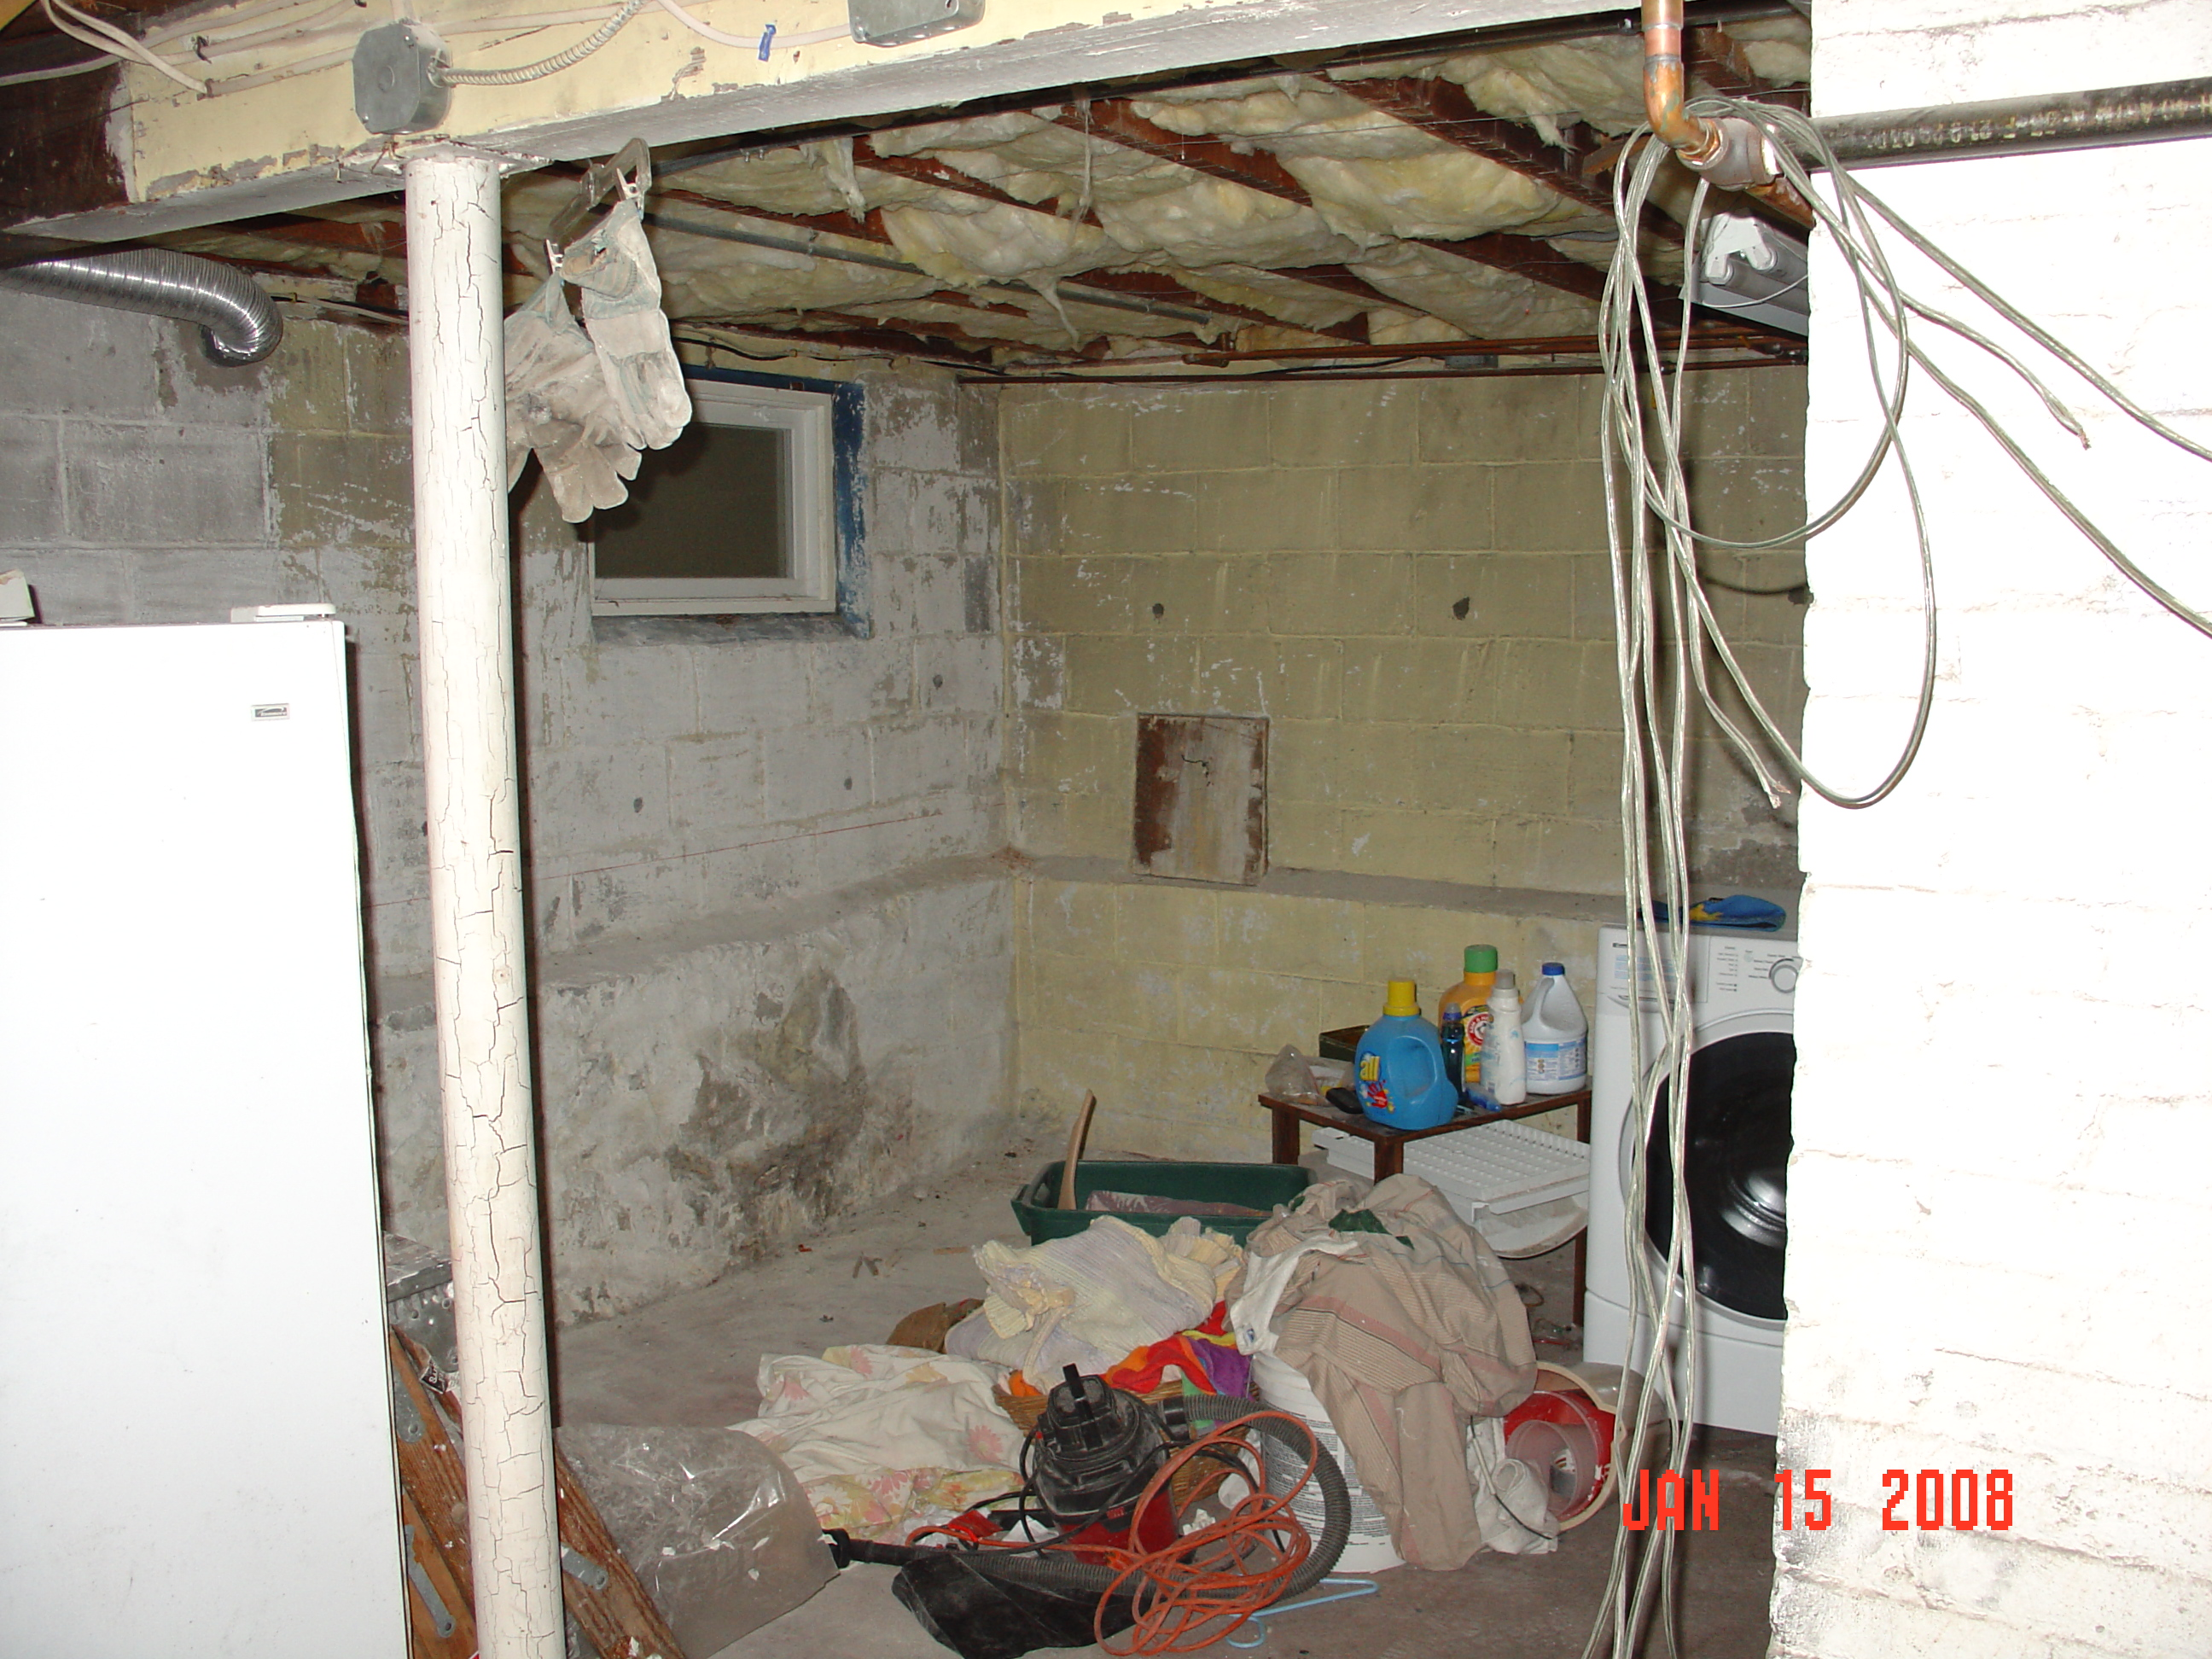 Wiring Basement Remodel Lexington Remodeling Advantage Construction Remodeling1 Remodeling2 Remodeling3